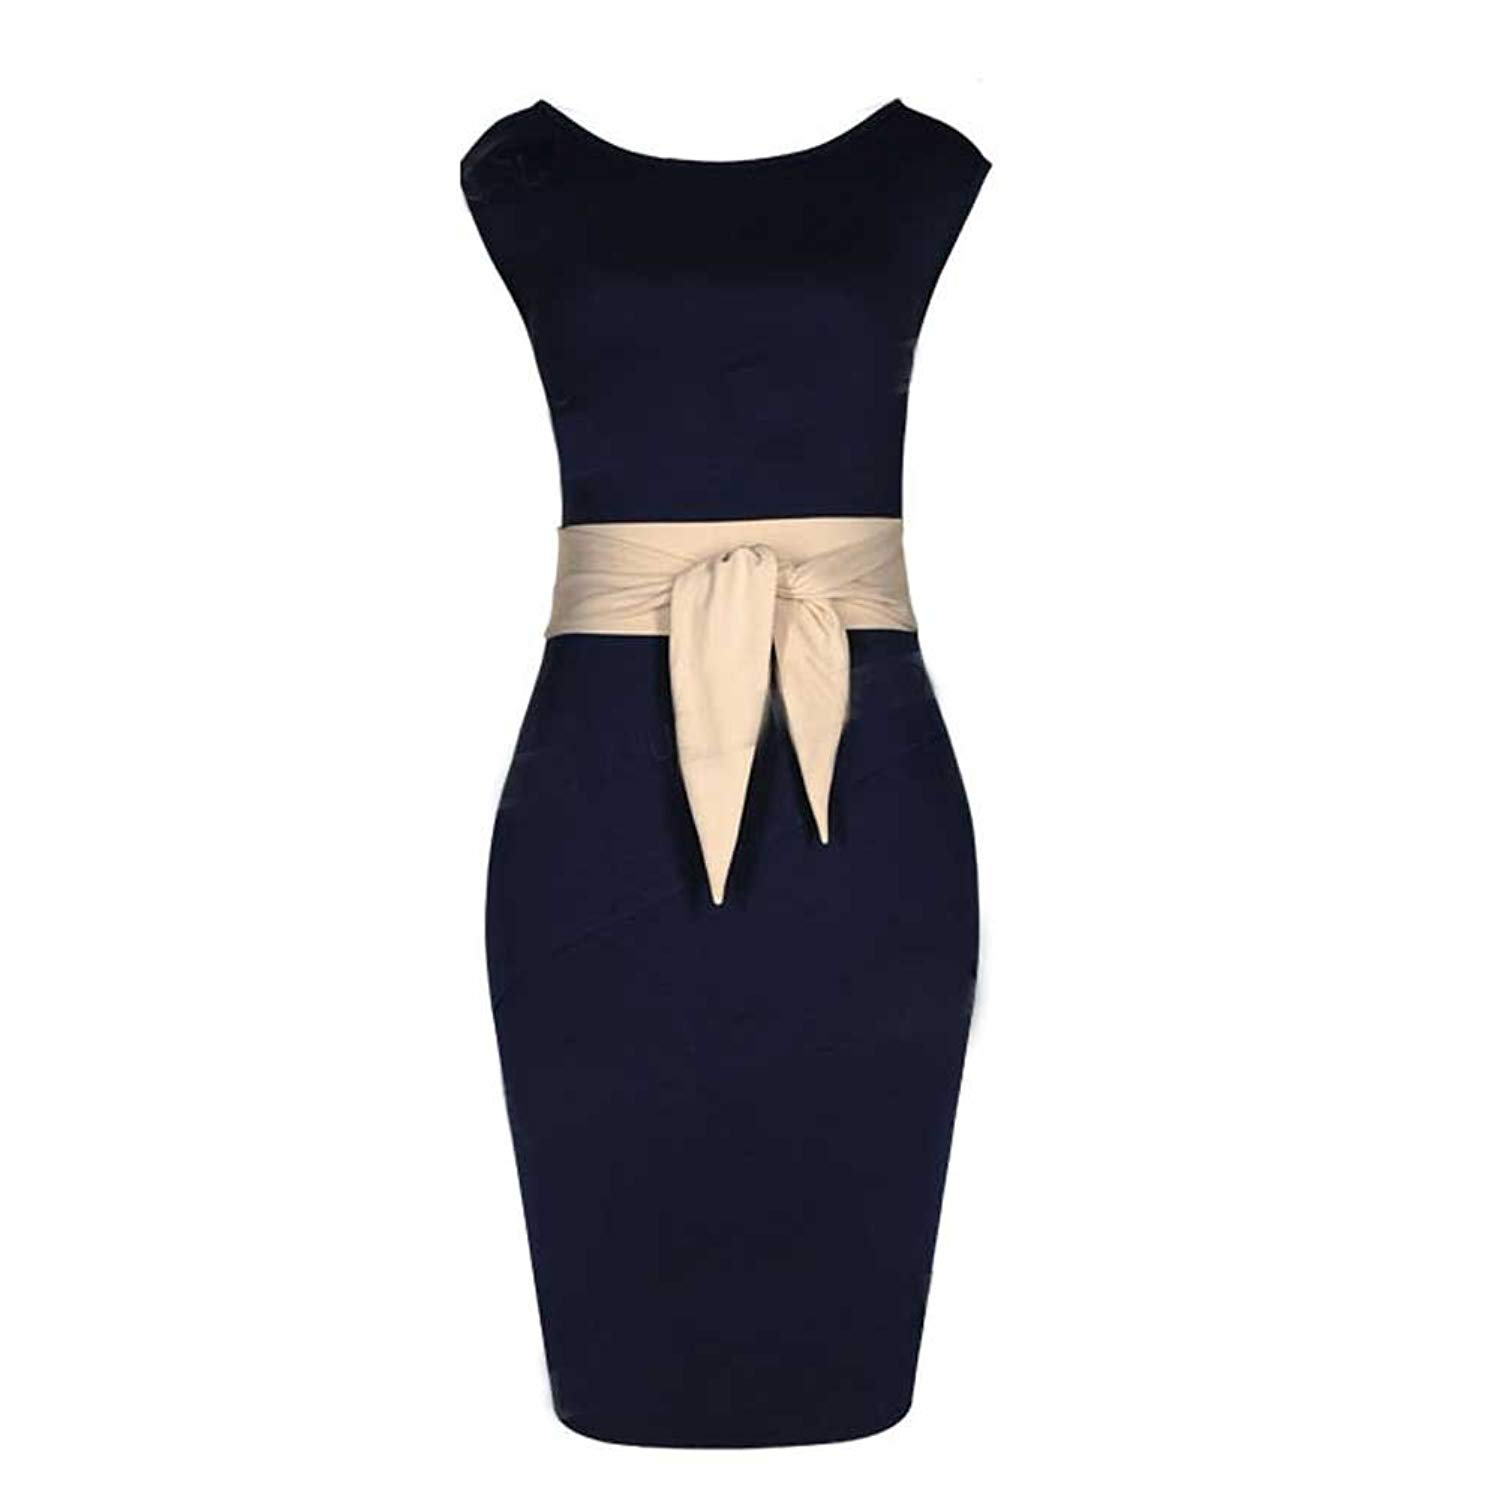 1462e7284f4b Get Quotations · Blue Mini Business Evening Party Work Wear Bkyo-013